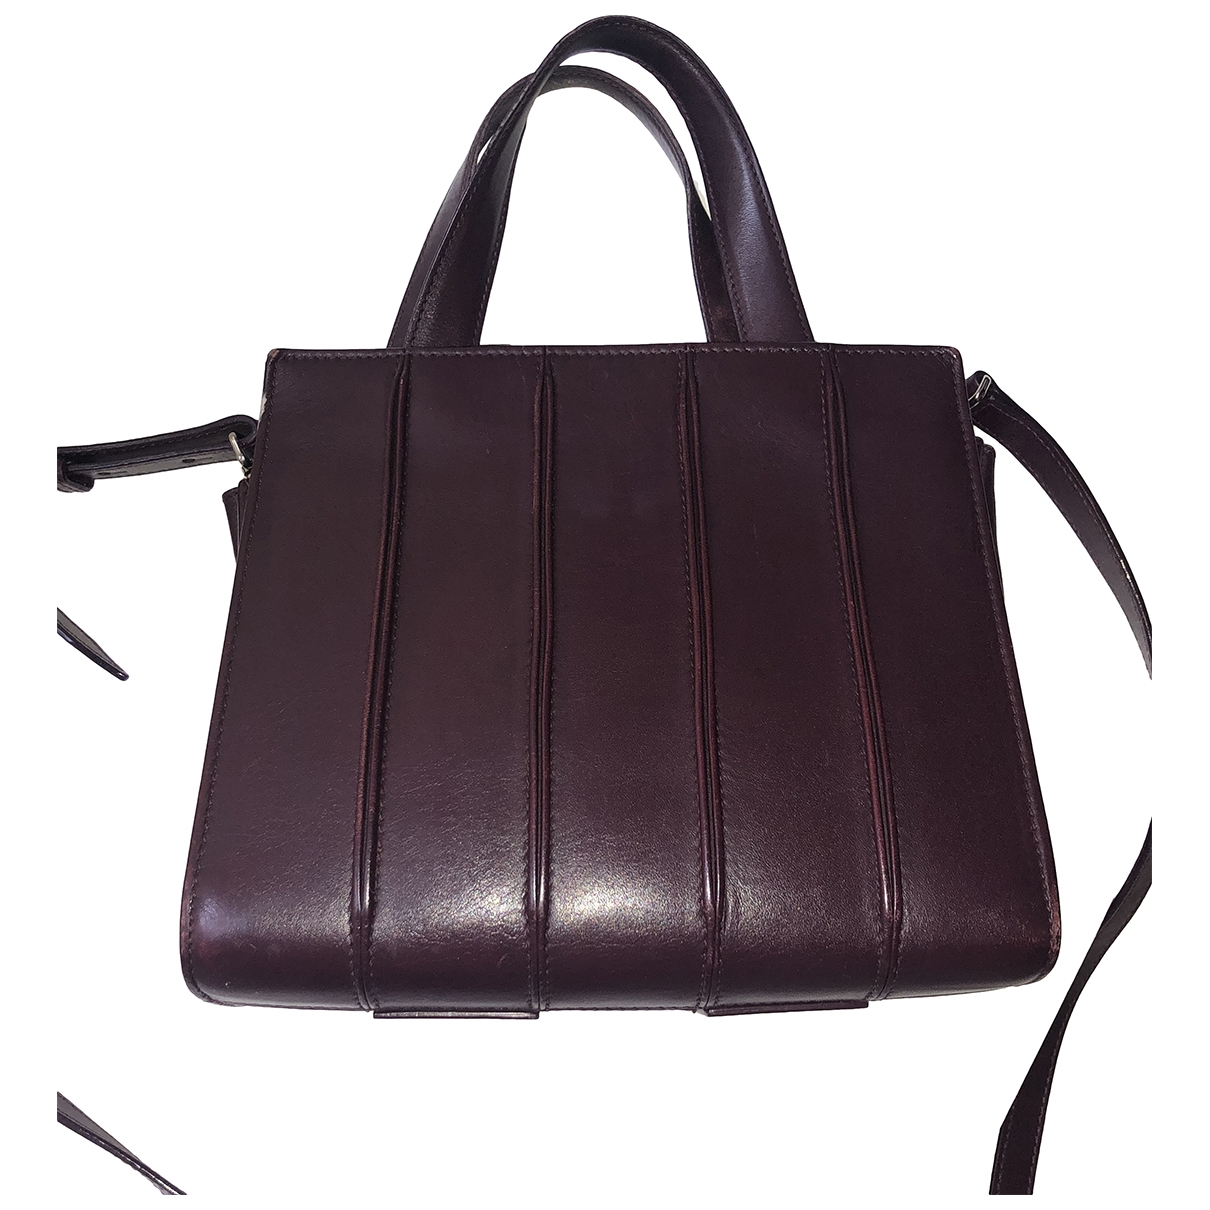 Max Mara \N Purple Leather handbag for Women \N